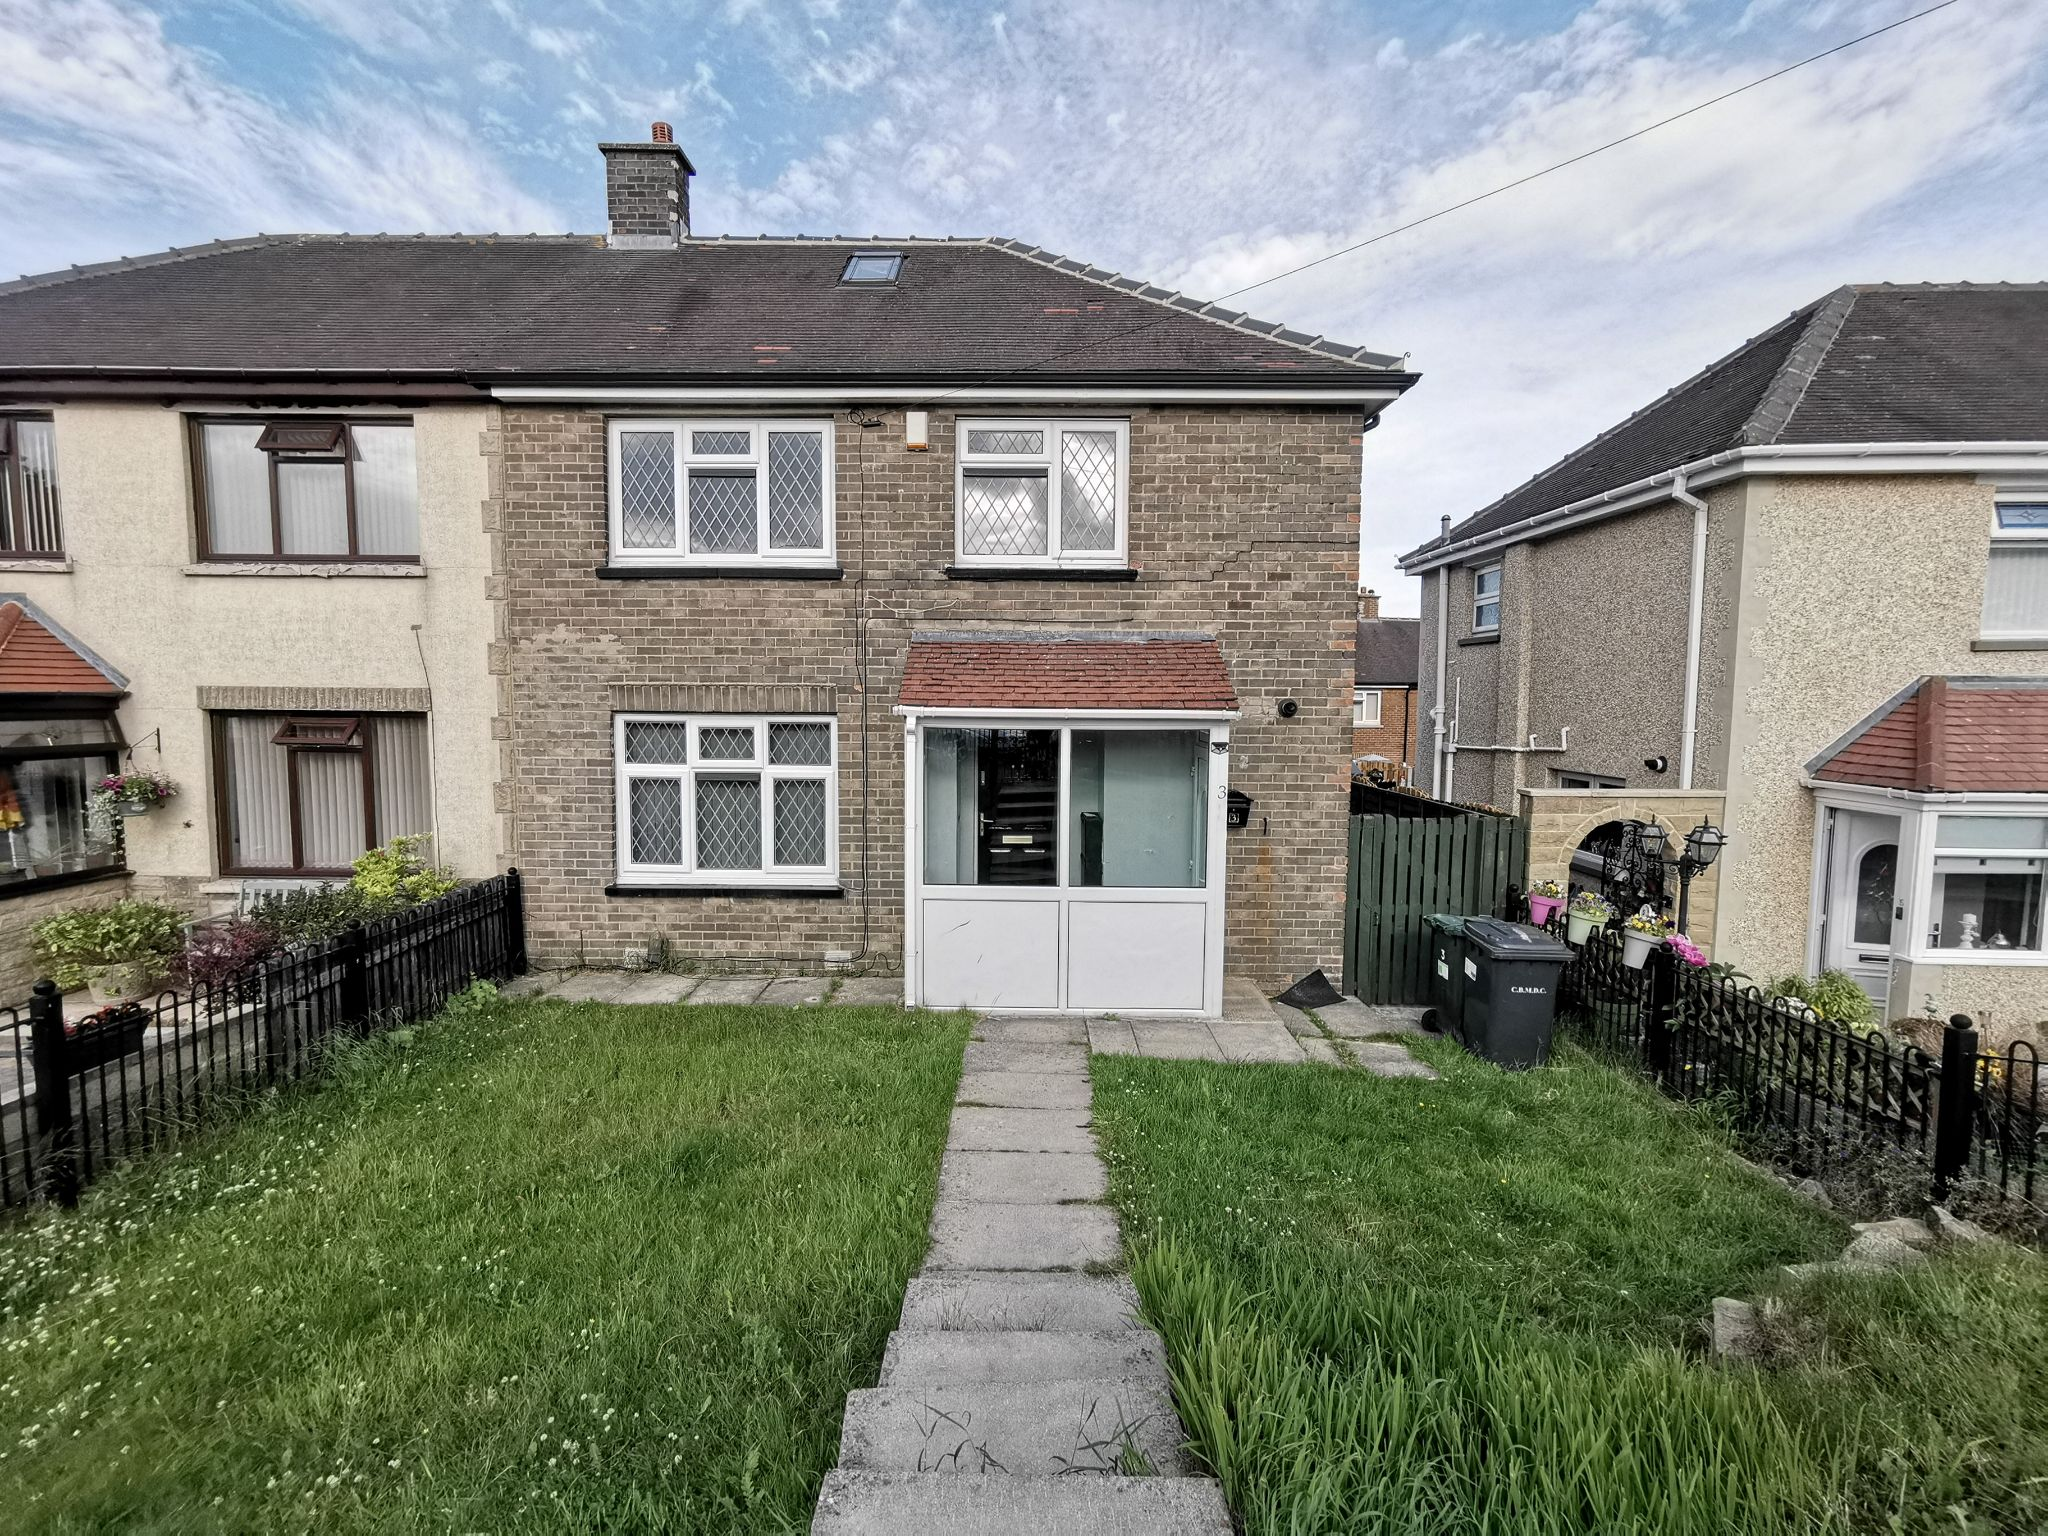 4 bedroom semi-detached house To Let in Bradford - Photograph 1.